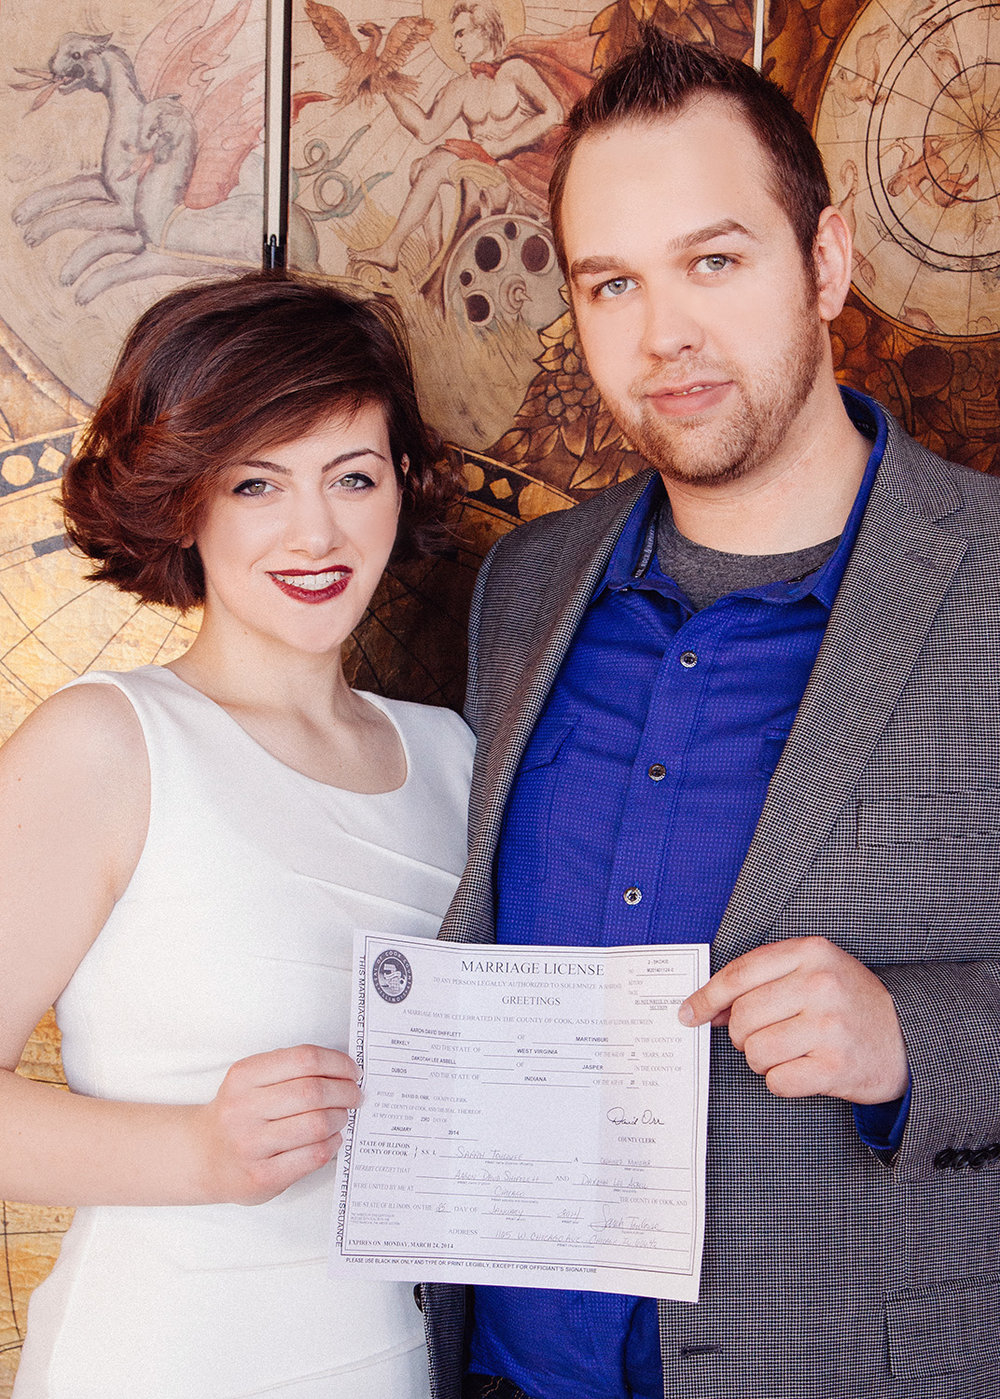 Newlyweds take a portrait with their Cook County marriage license